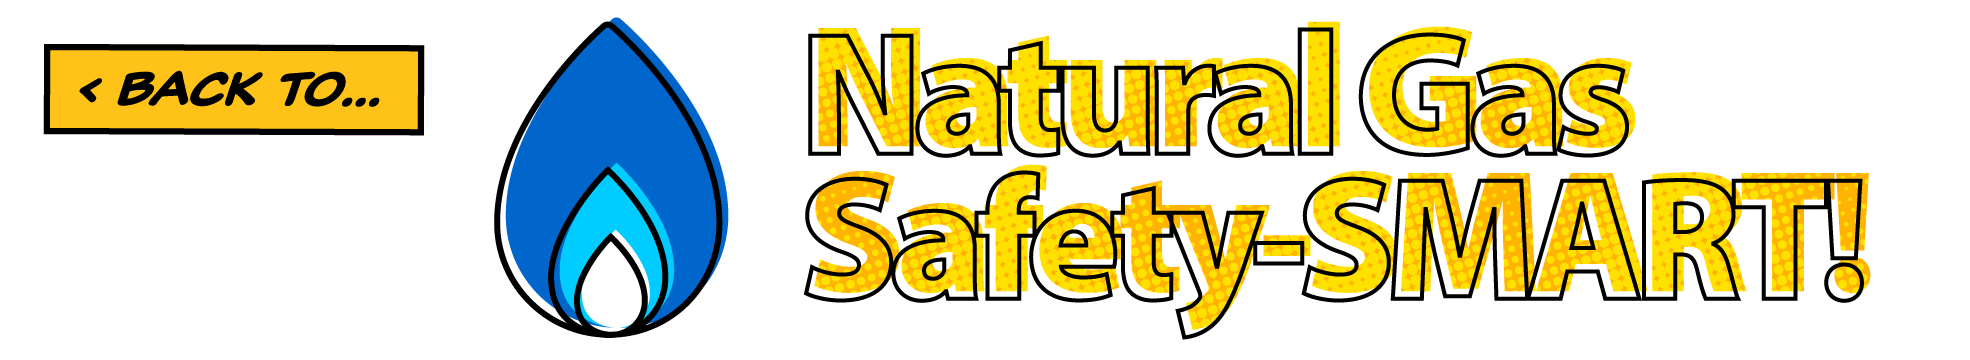 < Back to… Natural Gas Safety-SMART!